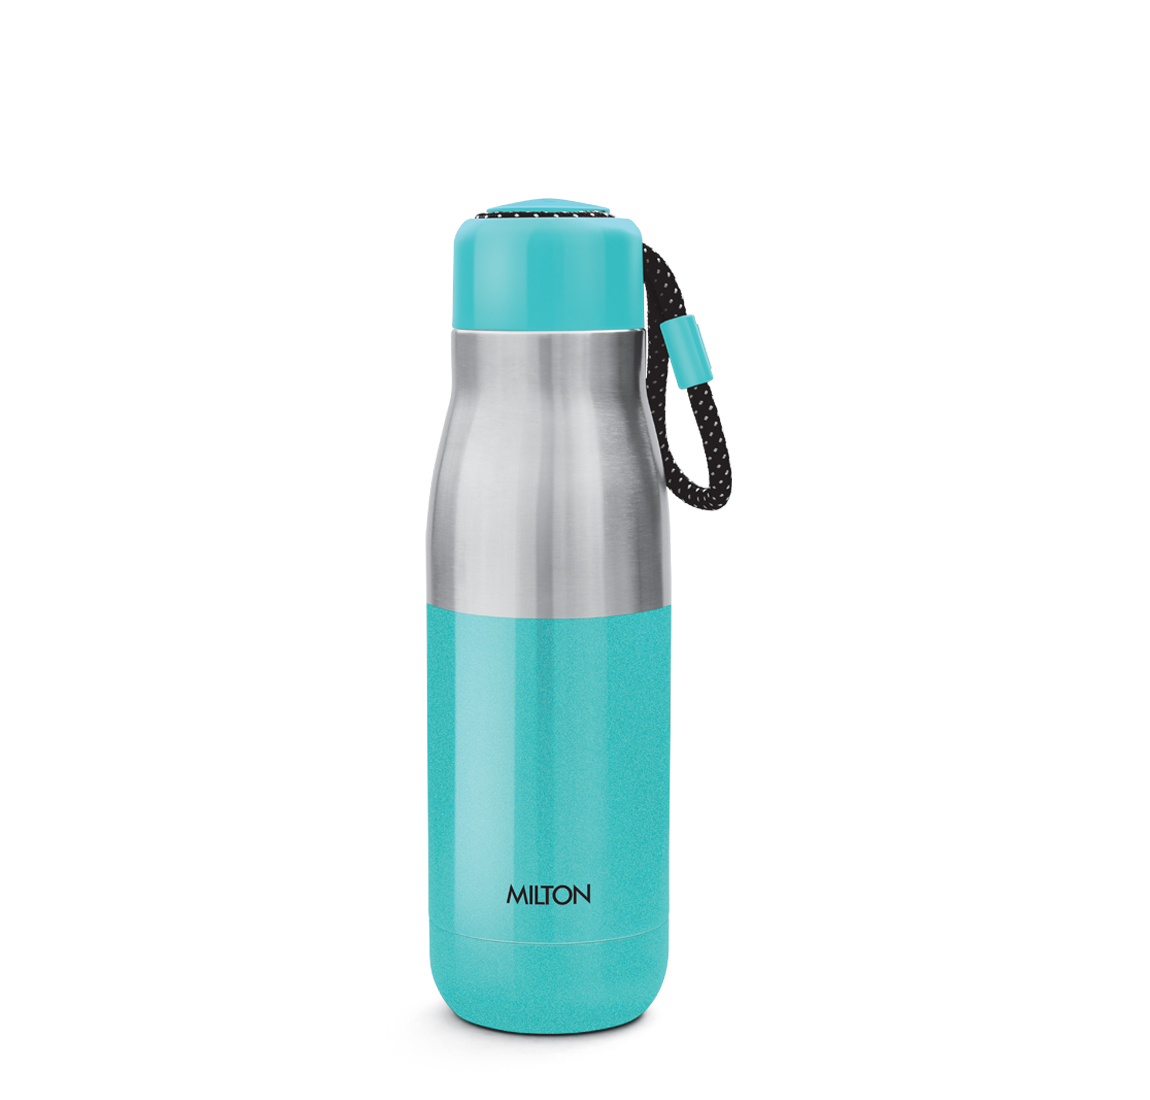 Milton EMINENT-600 Thermosteel Vacuum Insulated Stainless Steel Hot & Cold Water Bottle, 517 ML, White